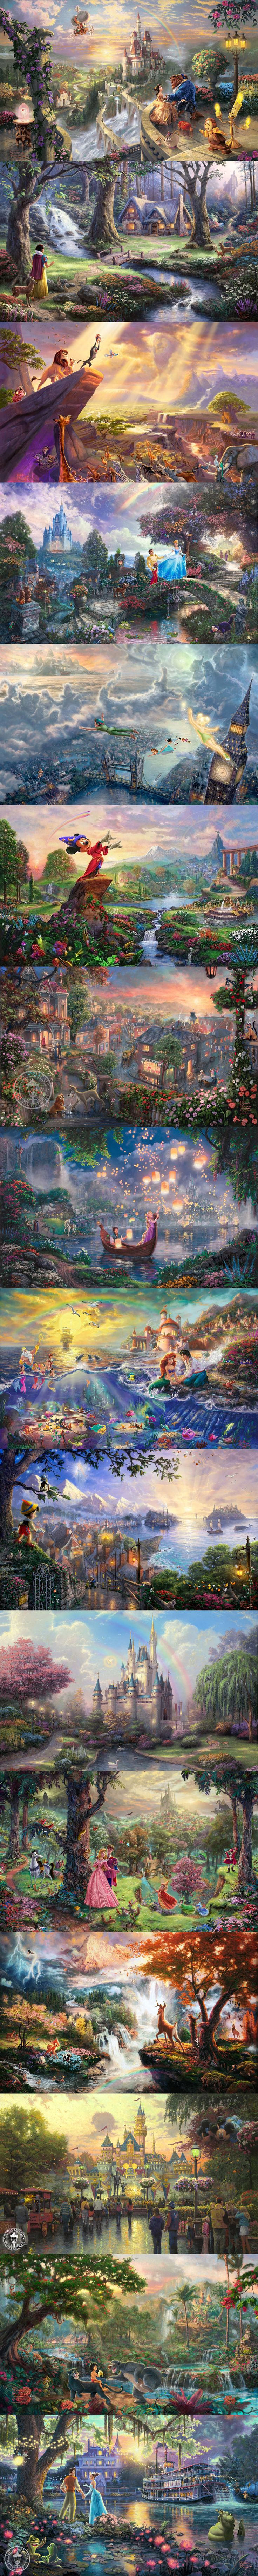 Disney Dreams Collection By Thomas Kinkade